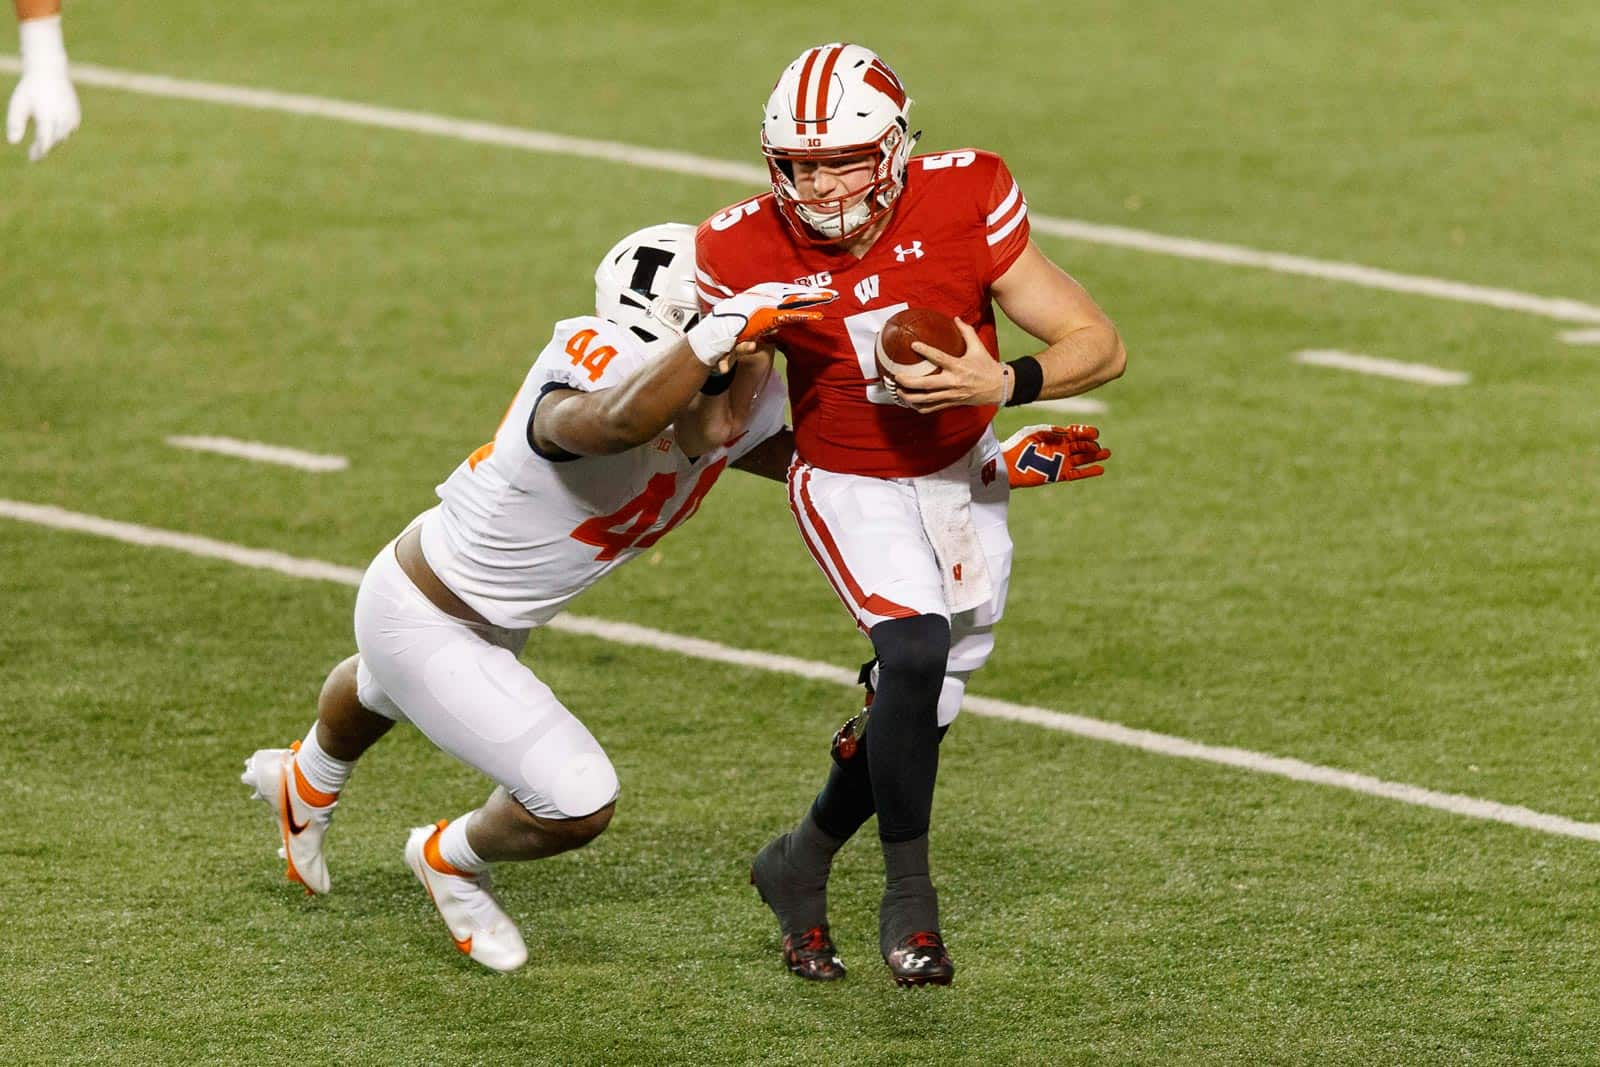 Wisconsin pauses team activities, cancels game vs. Nebraska